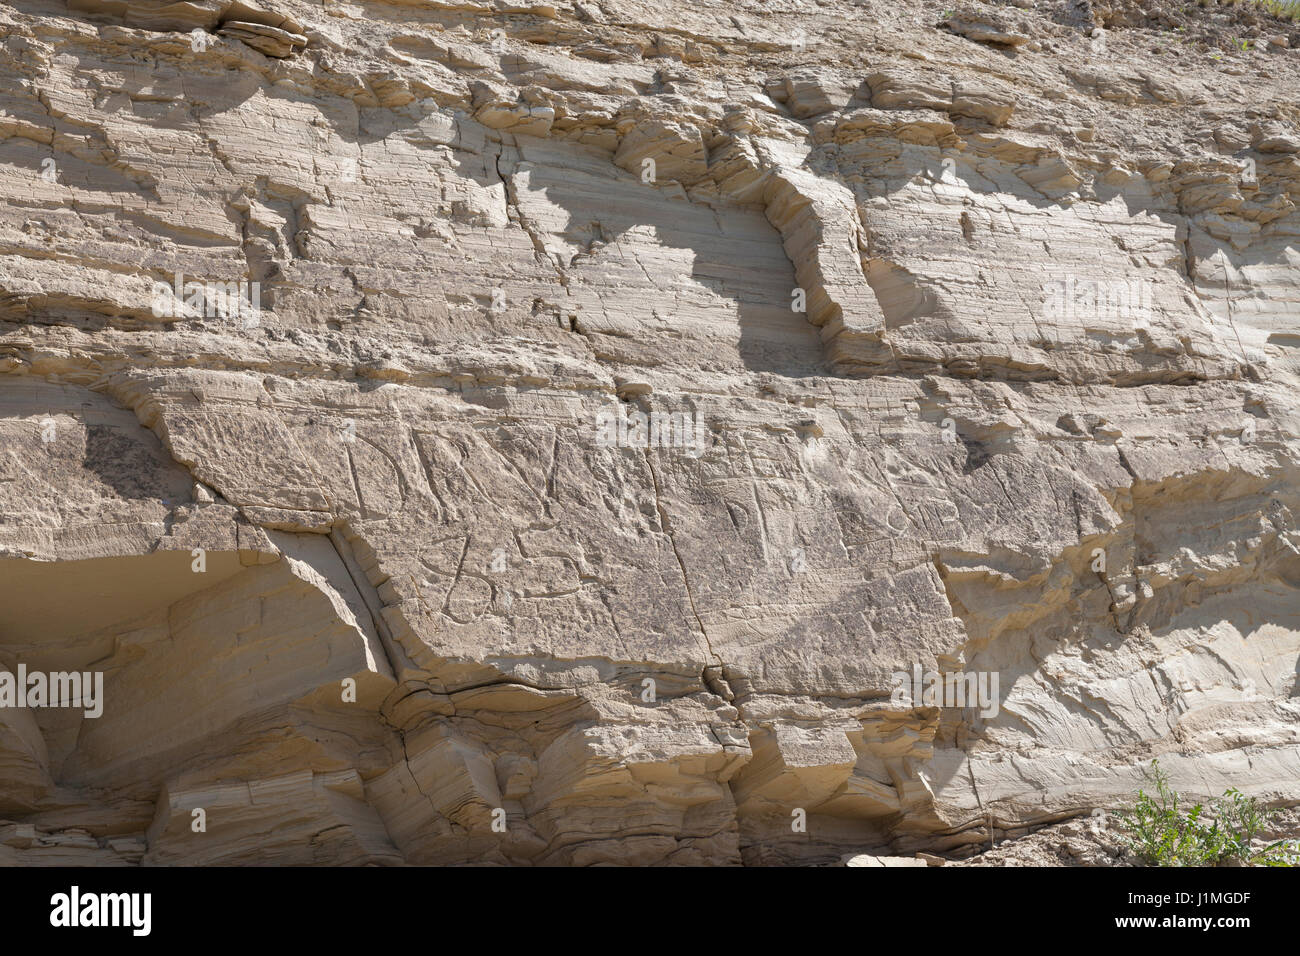 Franklin County, Washington: Graffiti on the White Bluffs along the Columbia River in Hanford Reach National Monument. - Stock Image